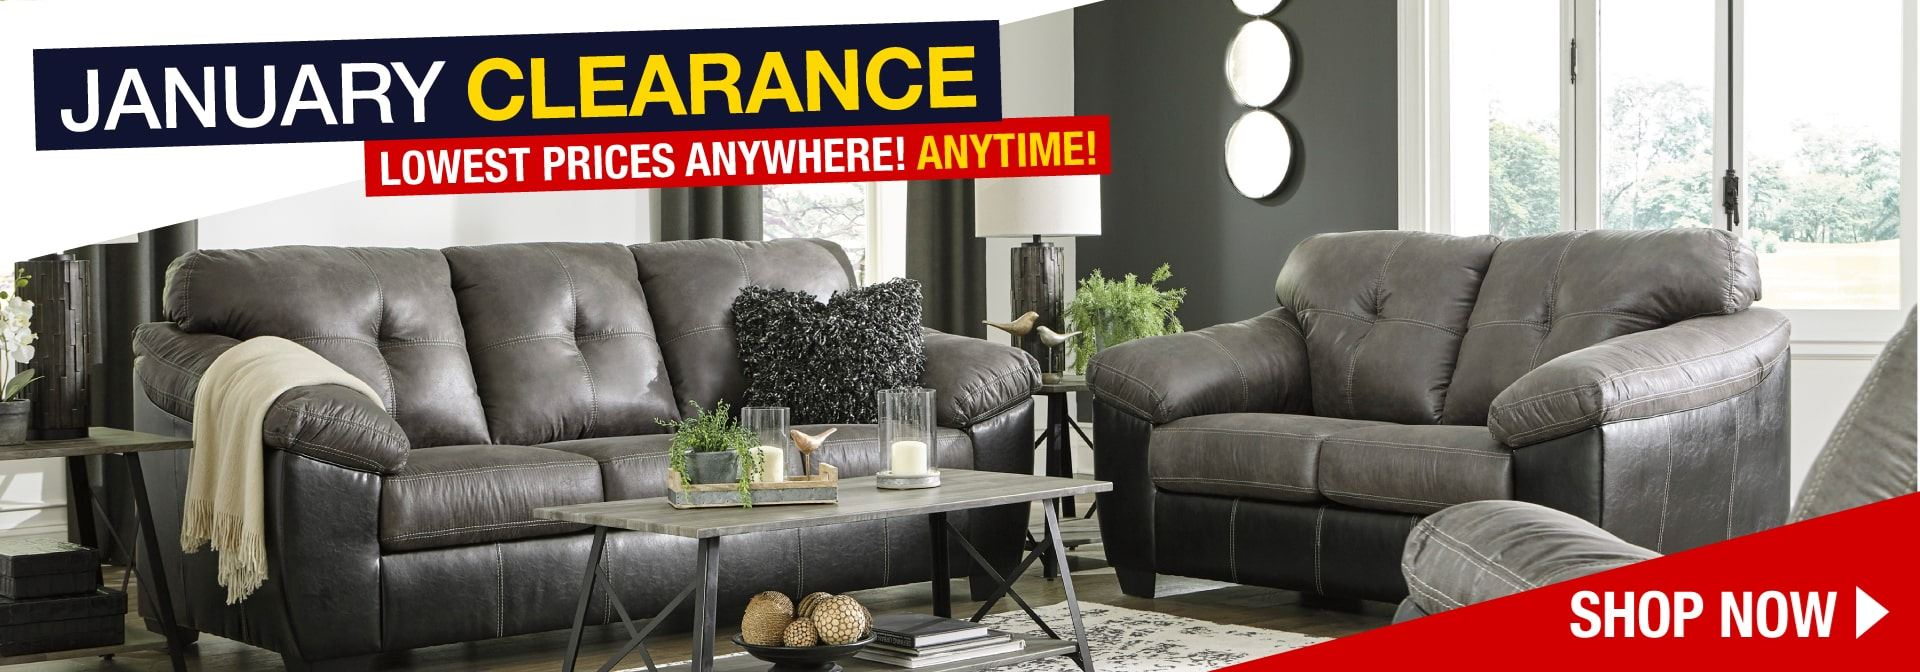 American Furniture Warehouse January Clearance Event